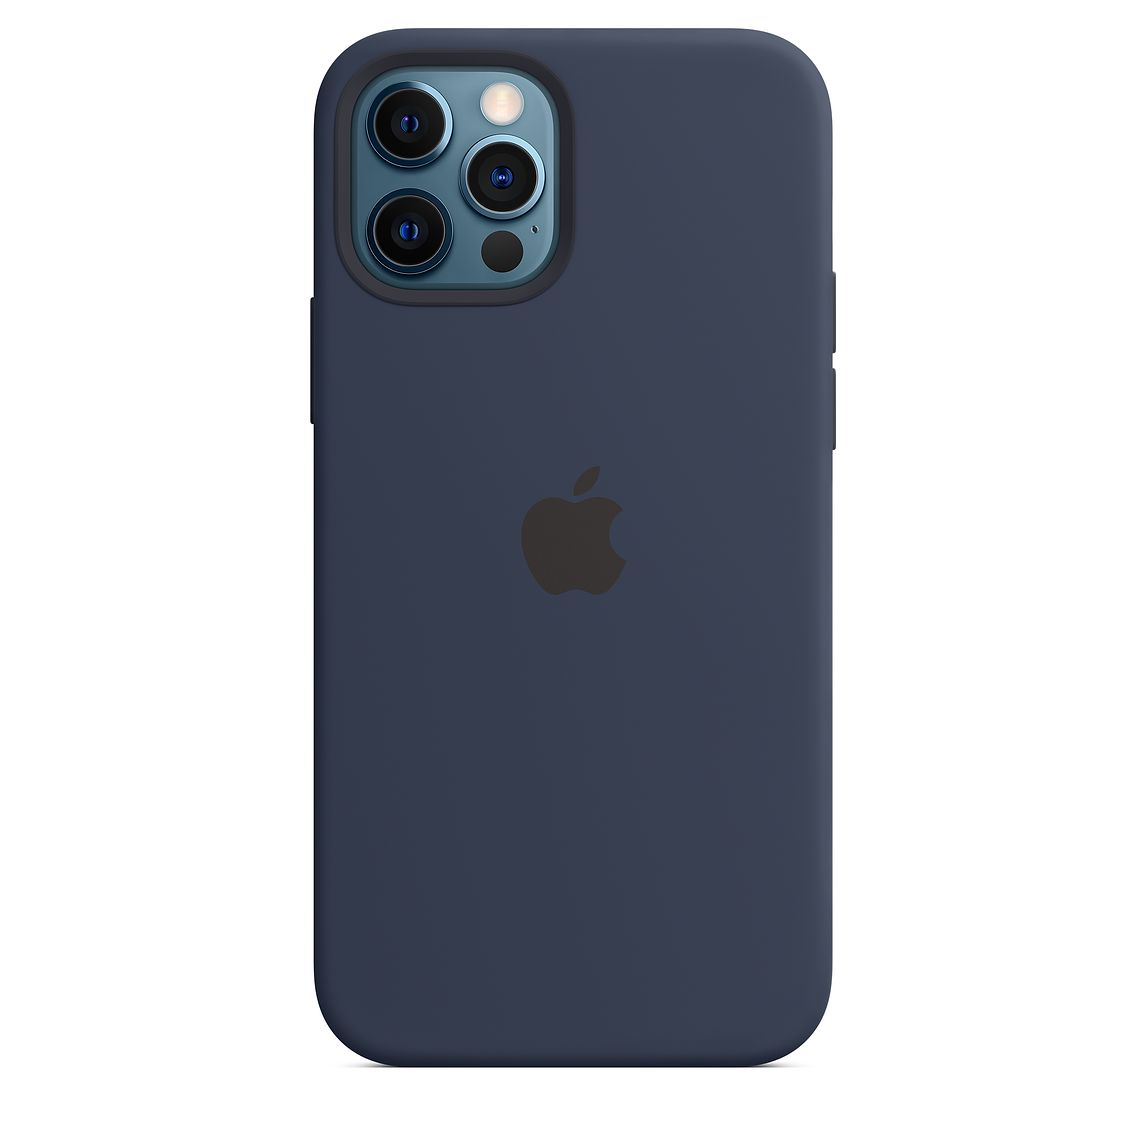 Apple iPhone 12|12 Pro Silicone Case - Deep Navy